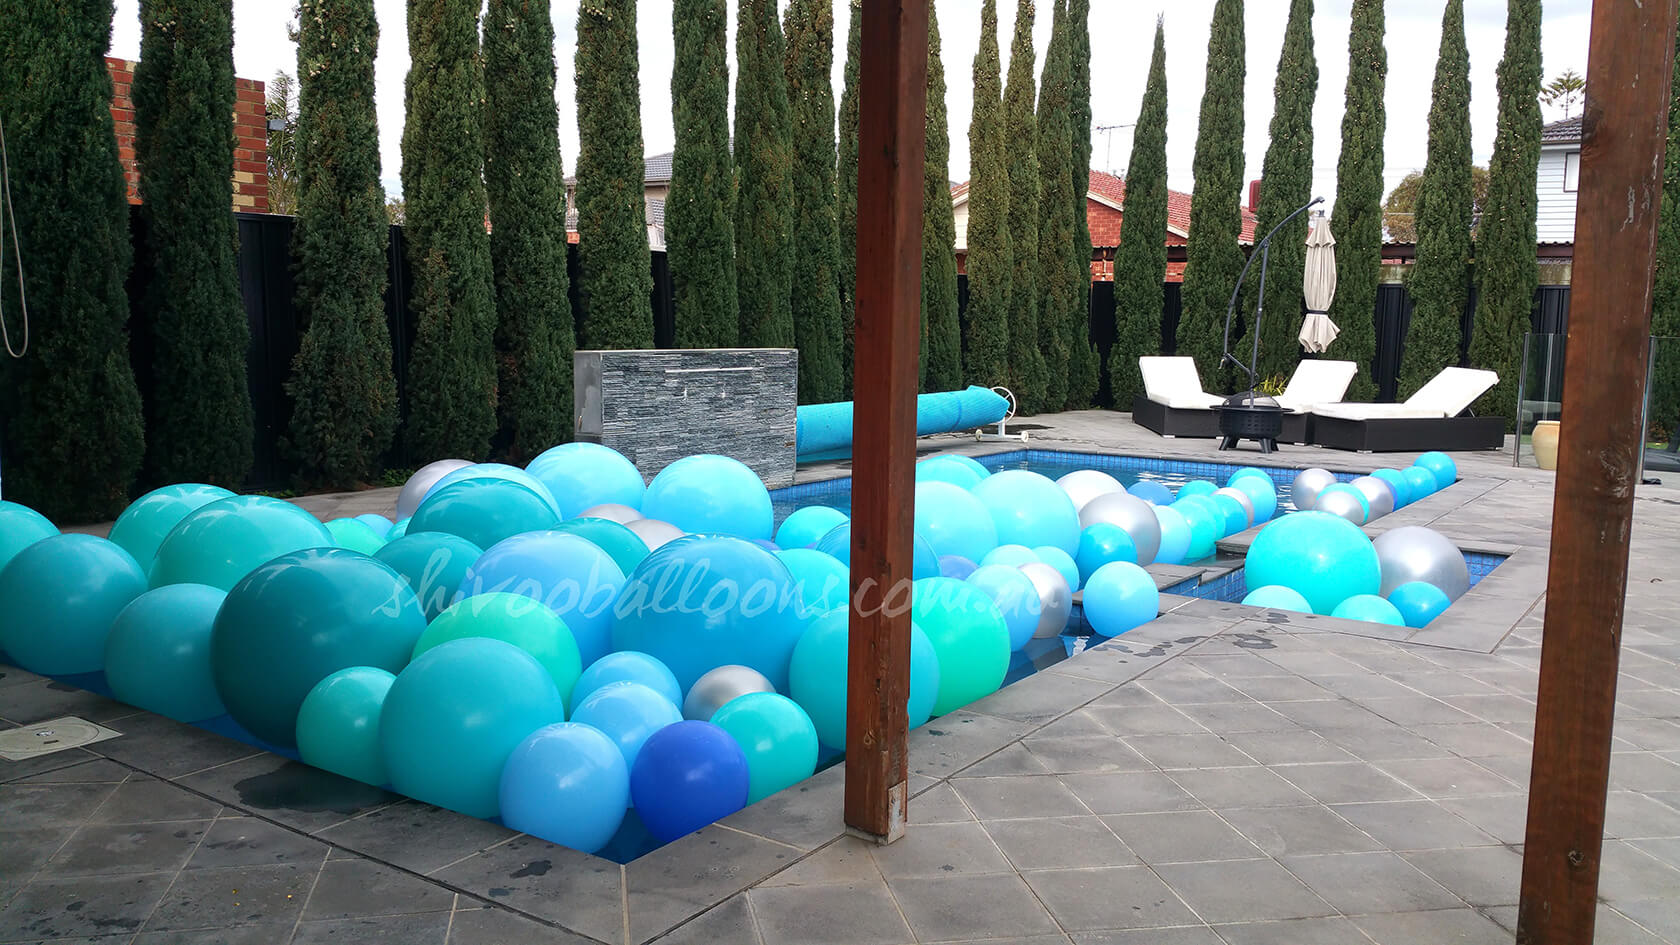 CE-66 - corporate - corporate events - shivoo balloons and decor specialists in coburg north